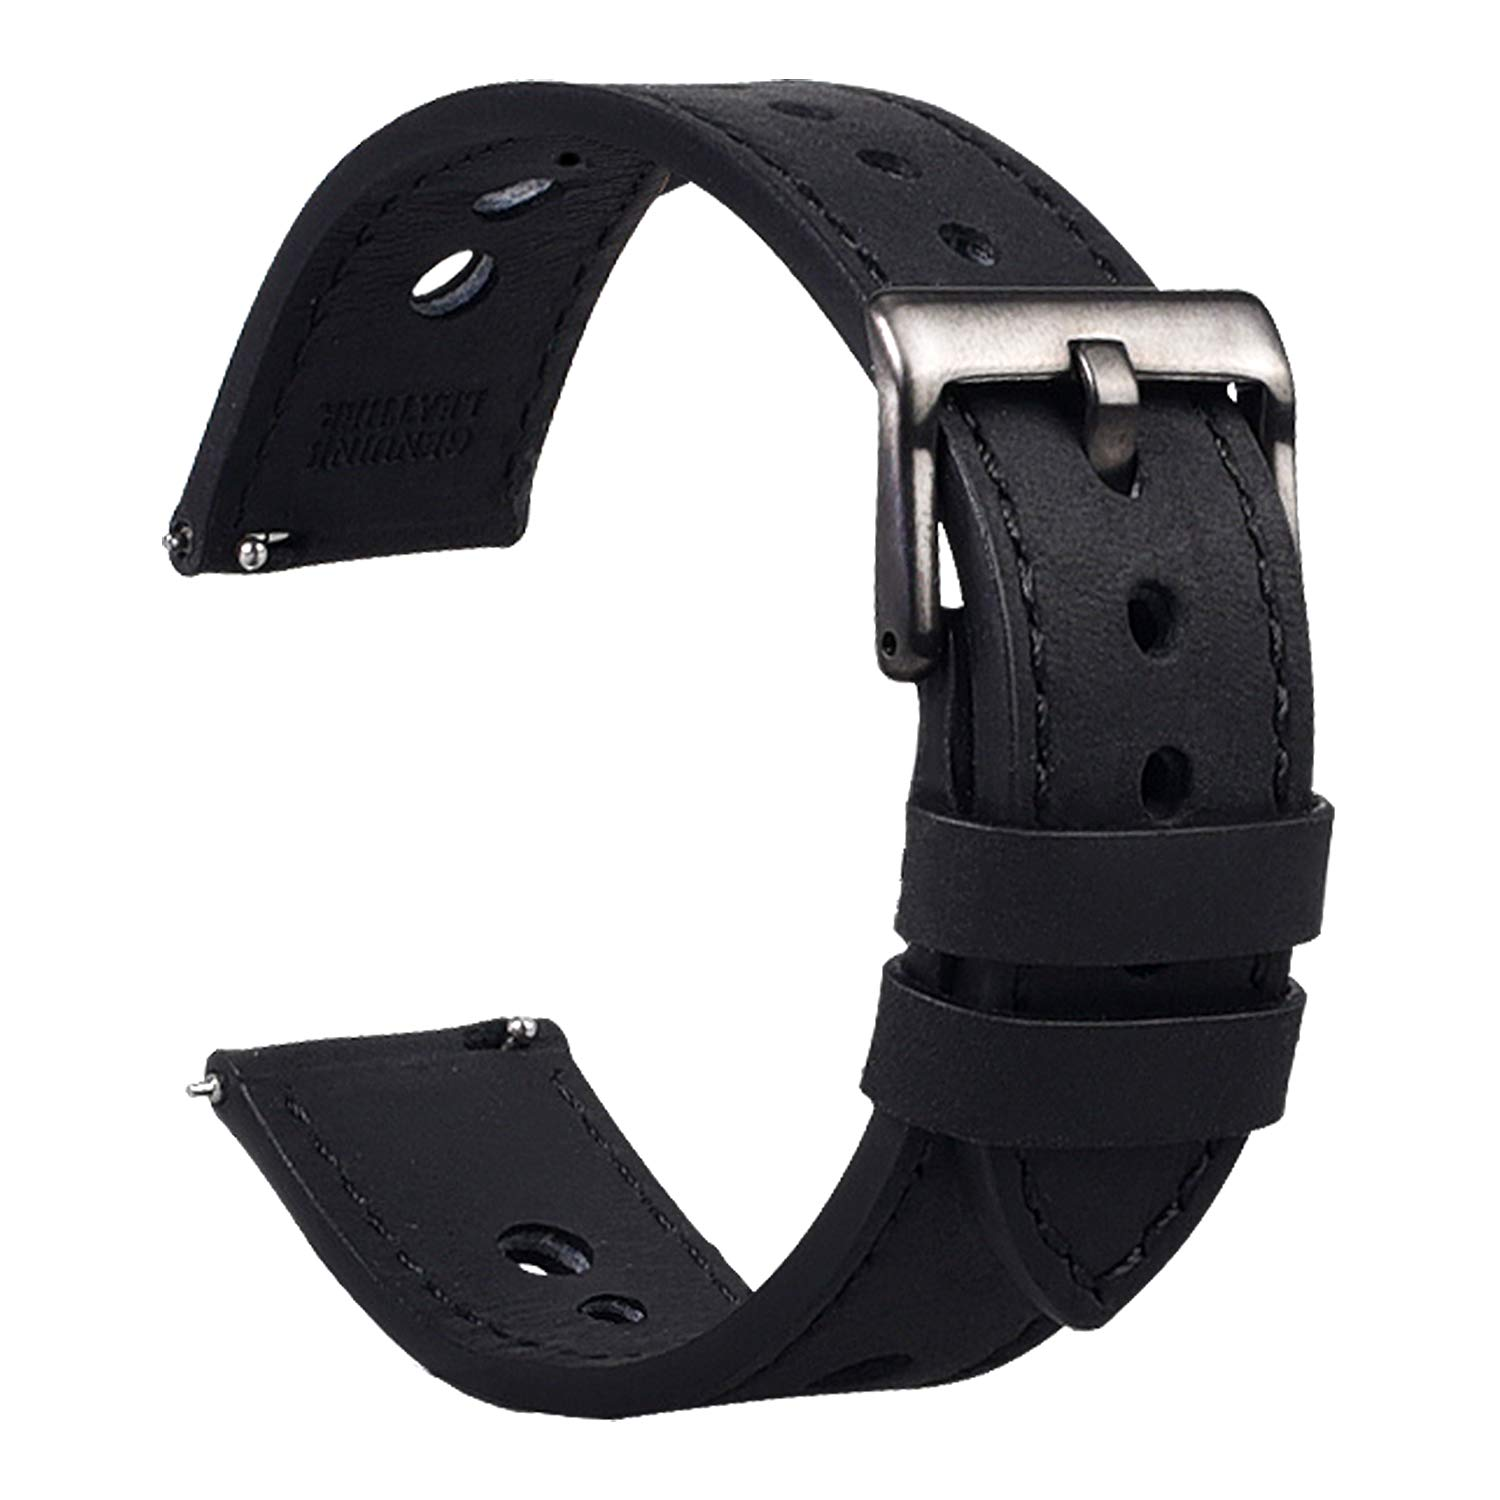 Cauwsai Leather Watch Band - Quick Release Double-Sided Leather Watch Strap - 18mm 20mm 22mm 24mm - 8 Color